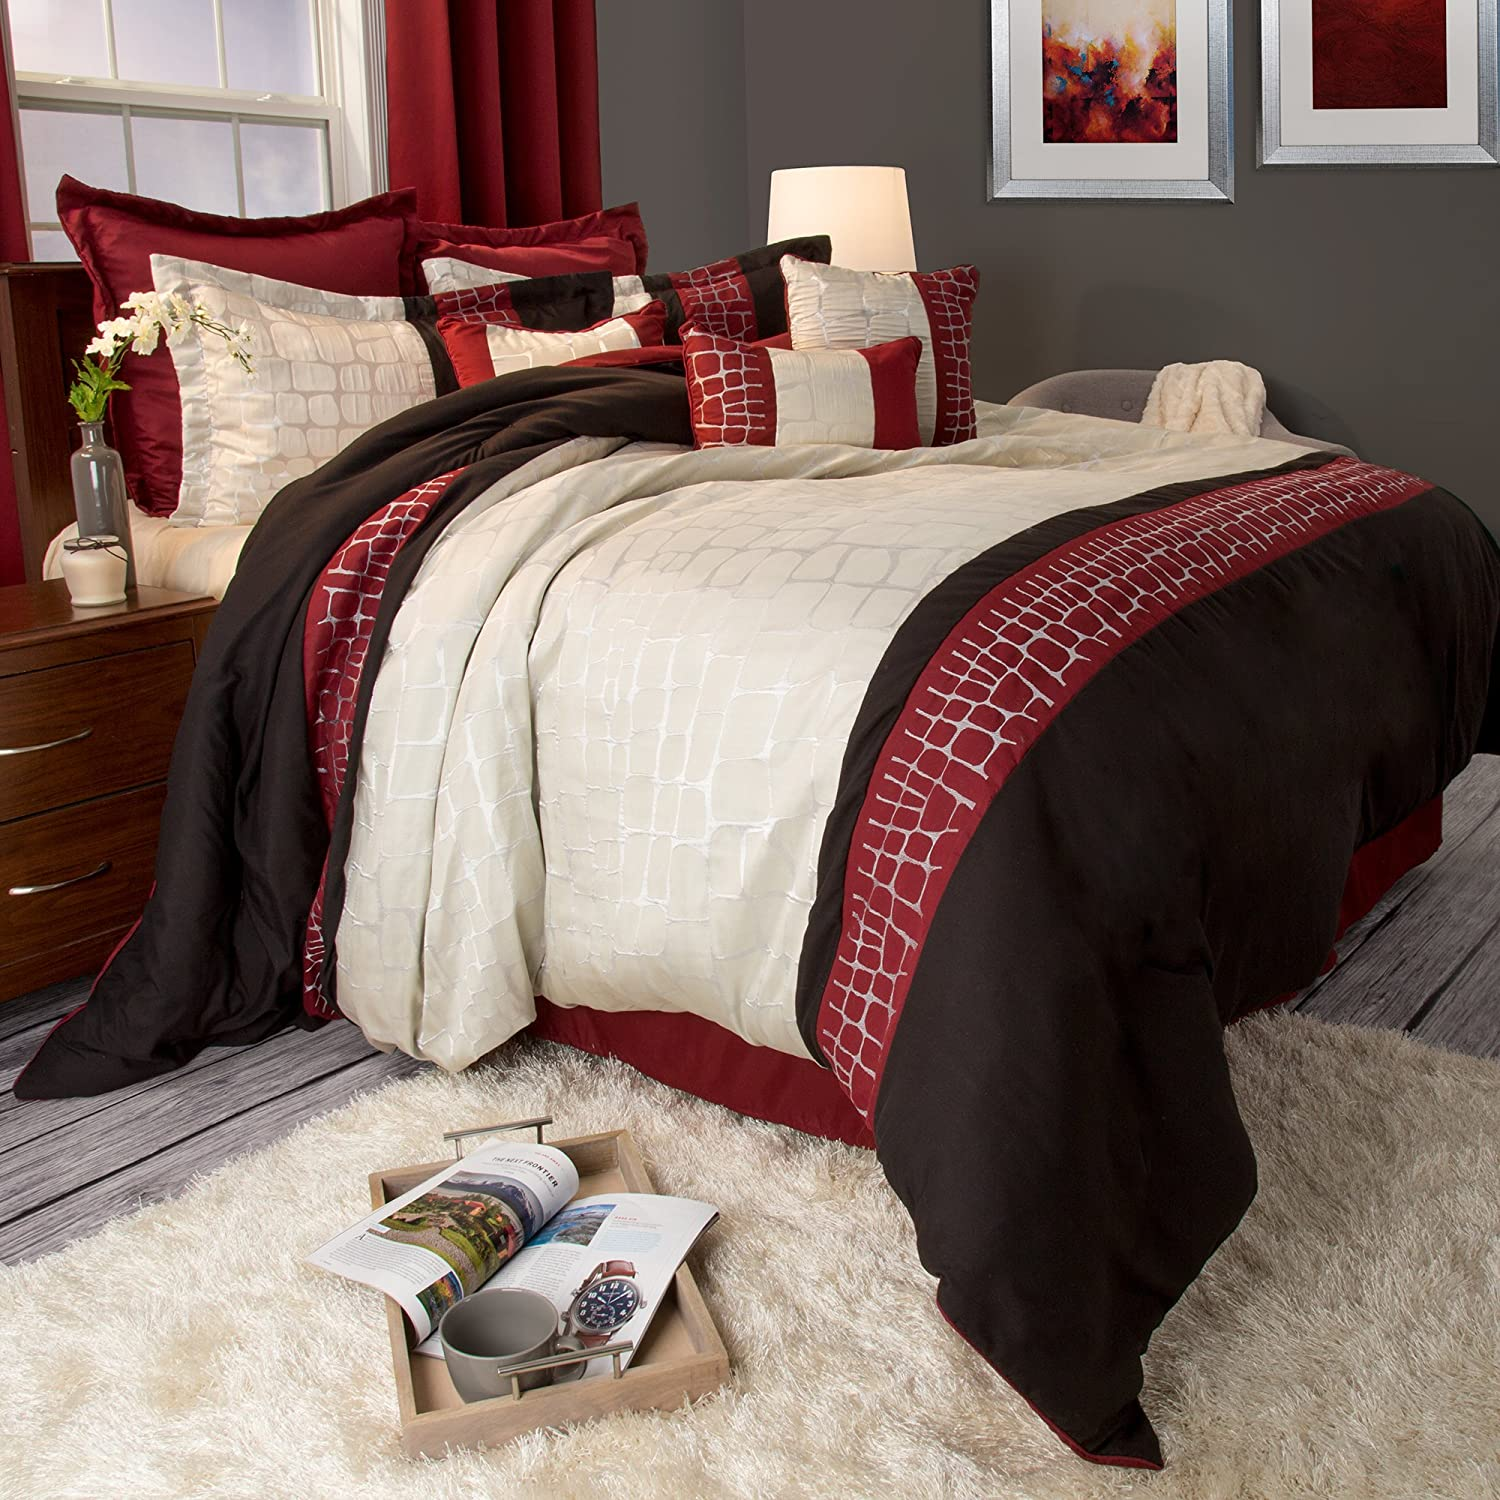 Bedford Home Ashley 10 Piece Comforter Set - King - Silver 66A-58852